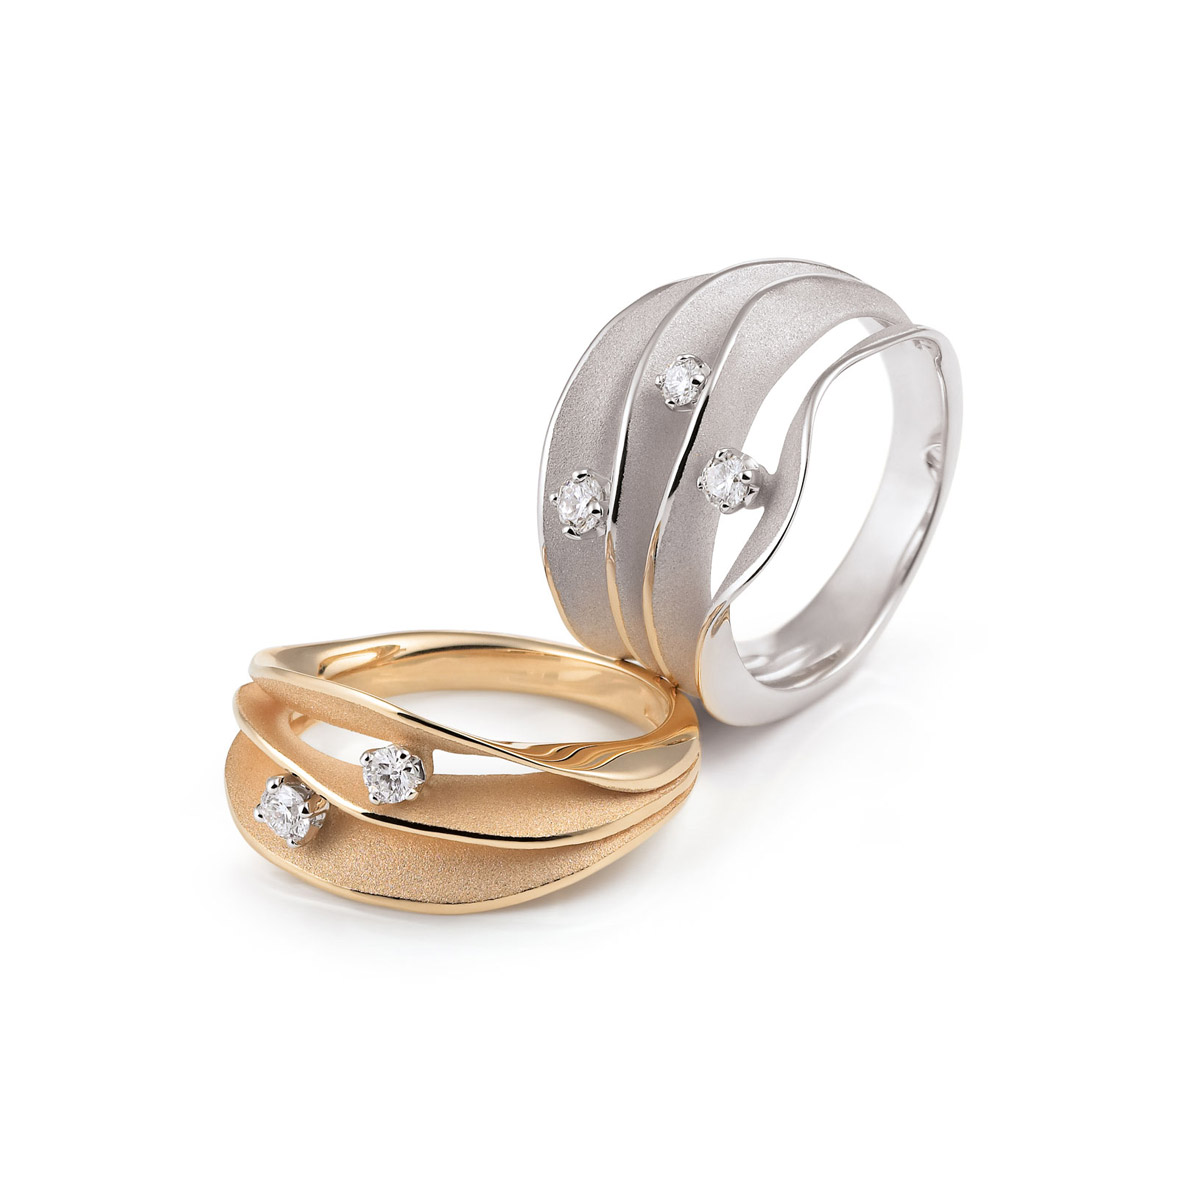 Annamaria Camilli Essential ring